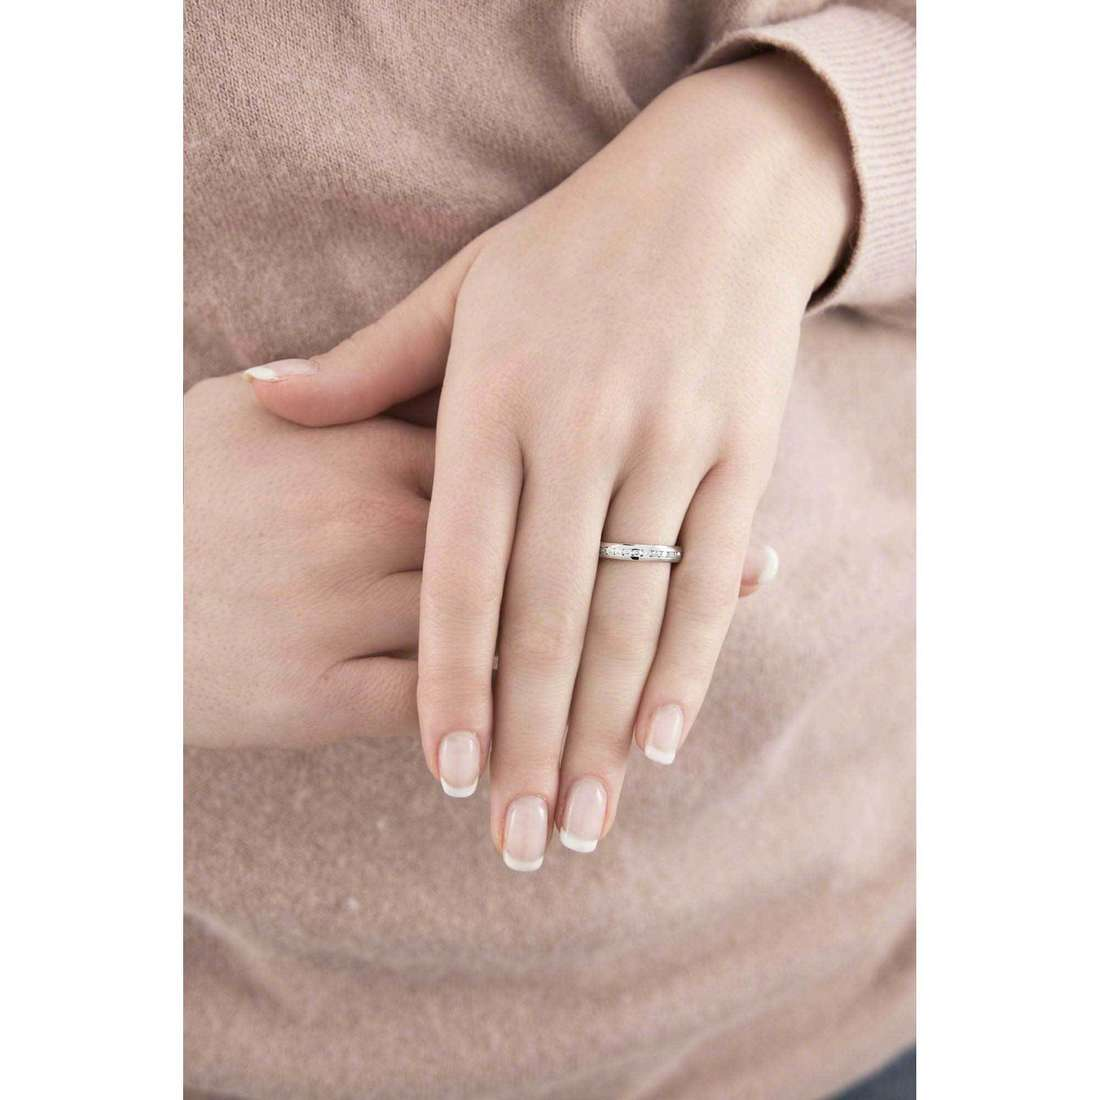 Morellato bagues Love Rings femme SNA26012 indosso